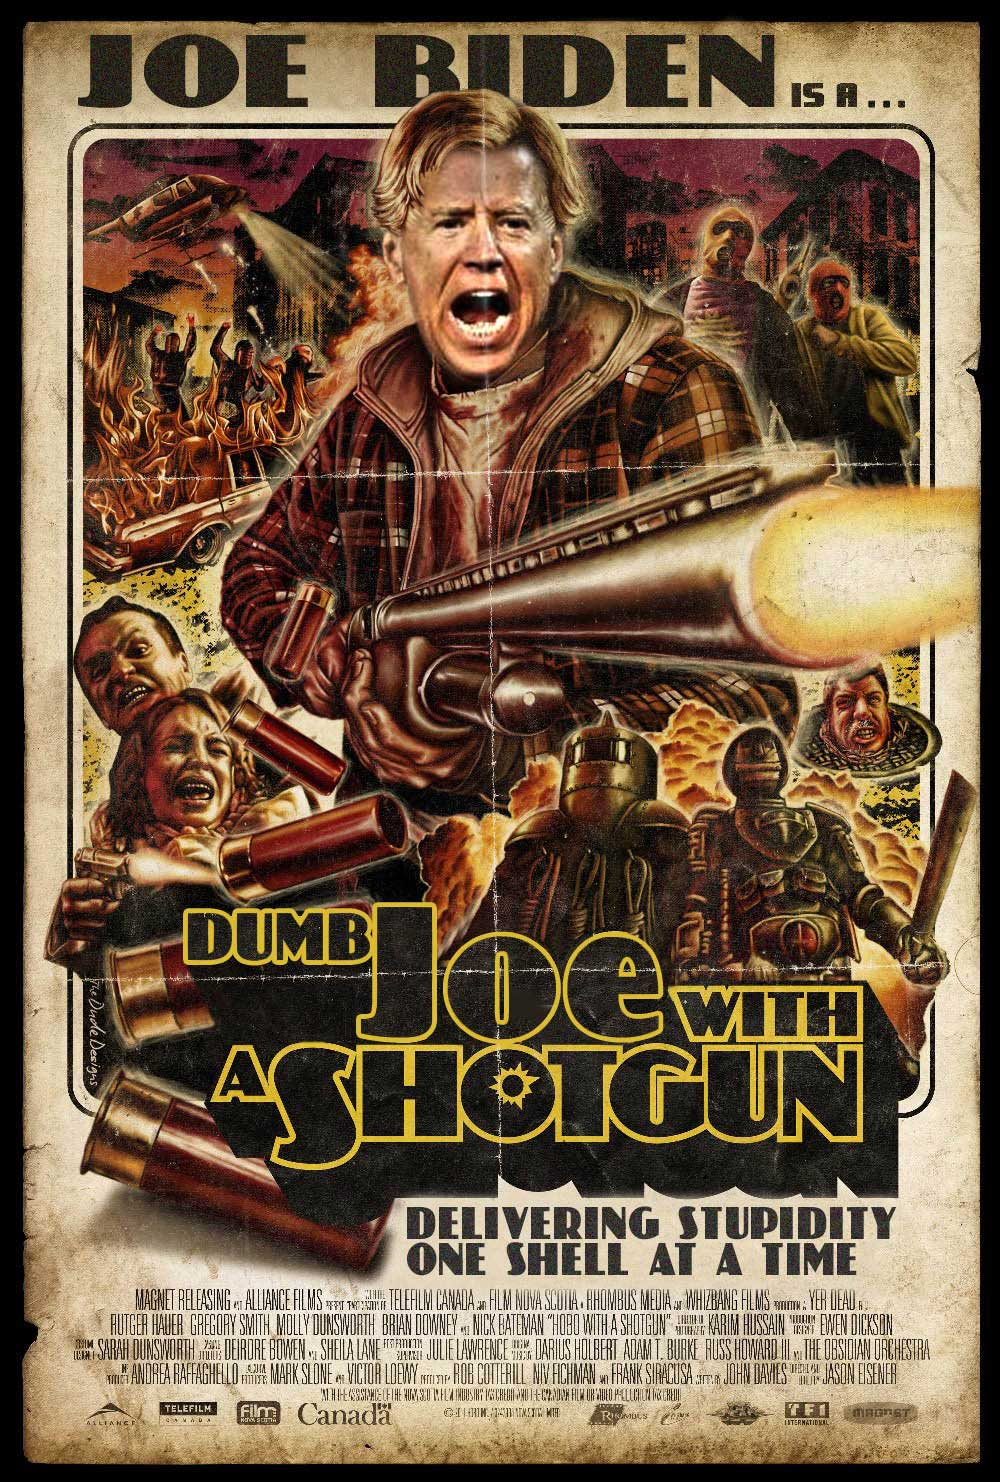 Joe-Biden-Hobo-With-A-Shotgun-Poster